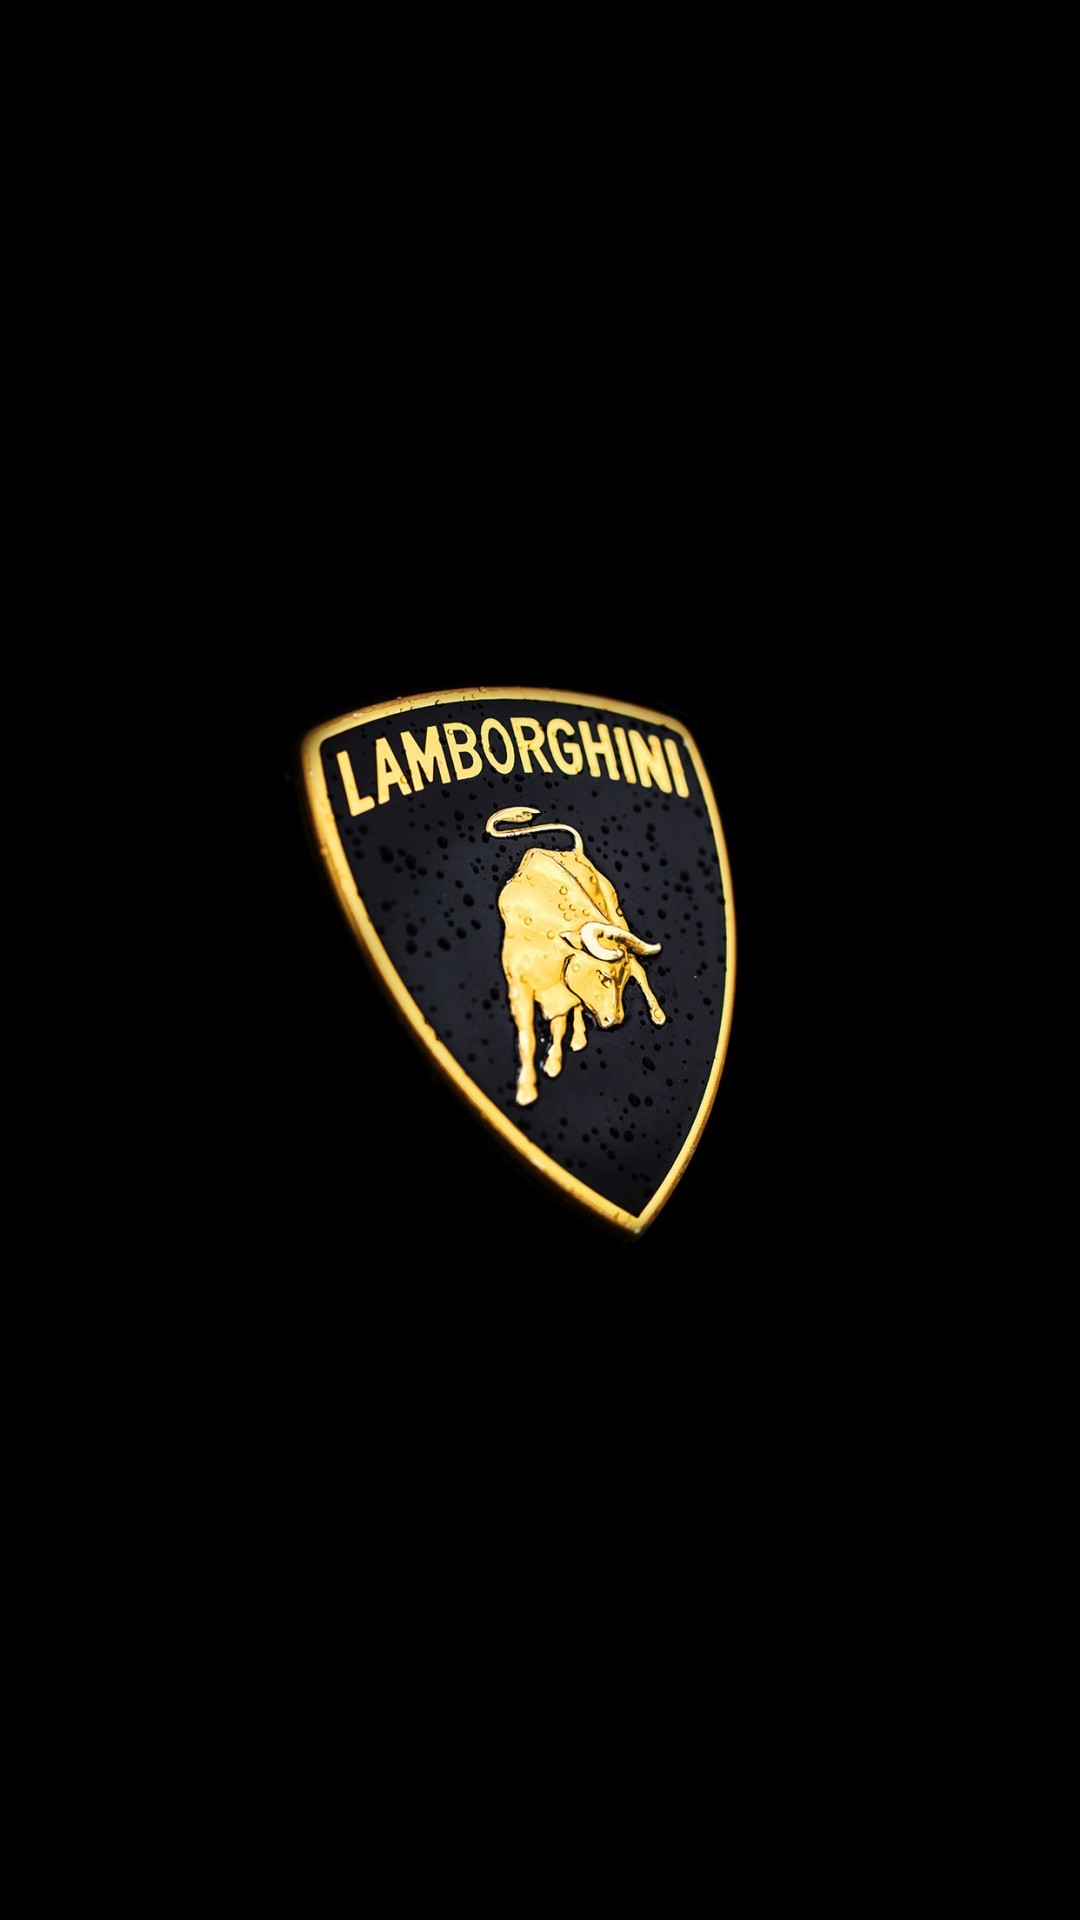 Lamborghini Logo Wallpaper 237947